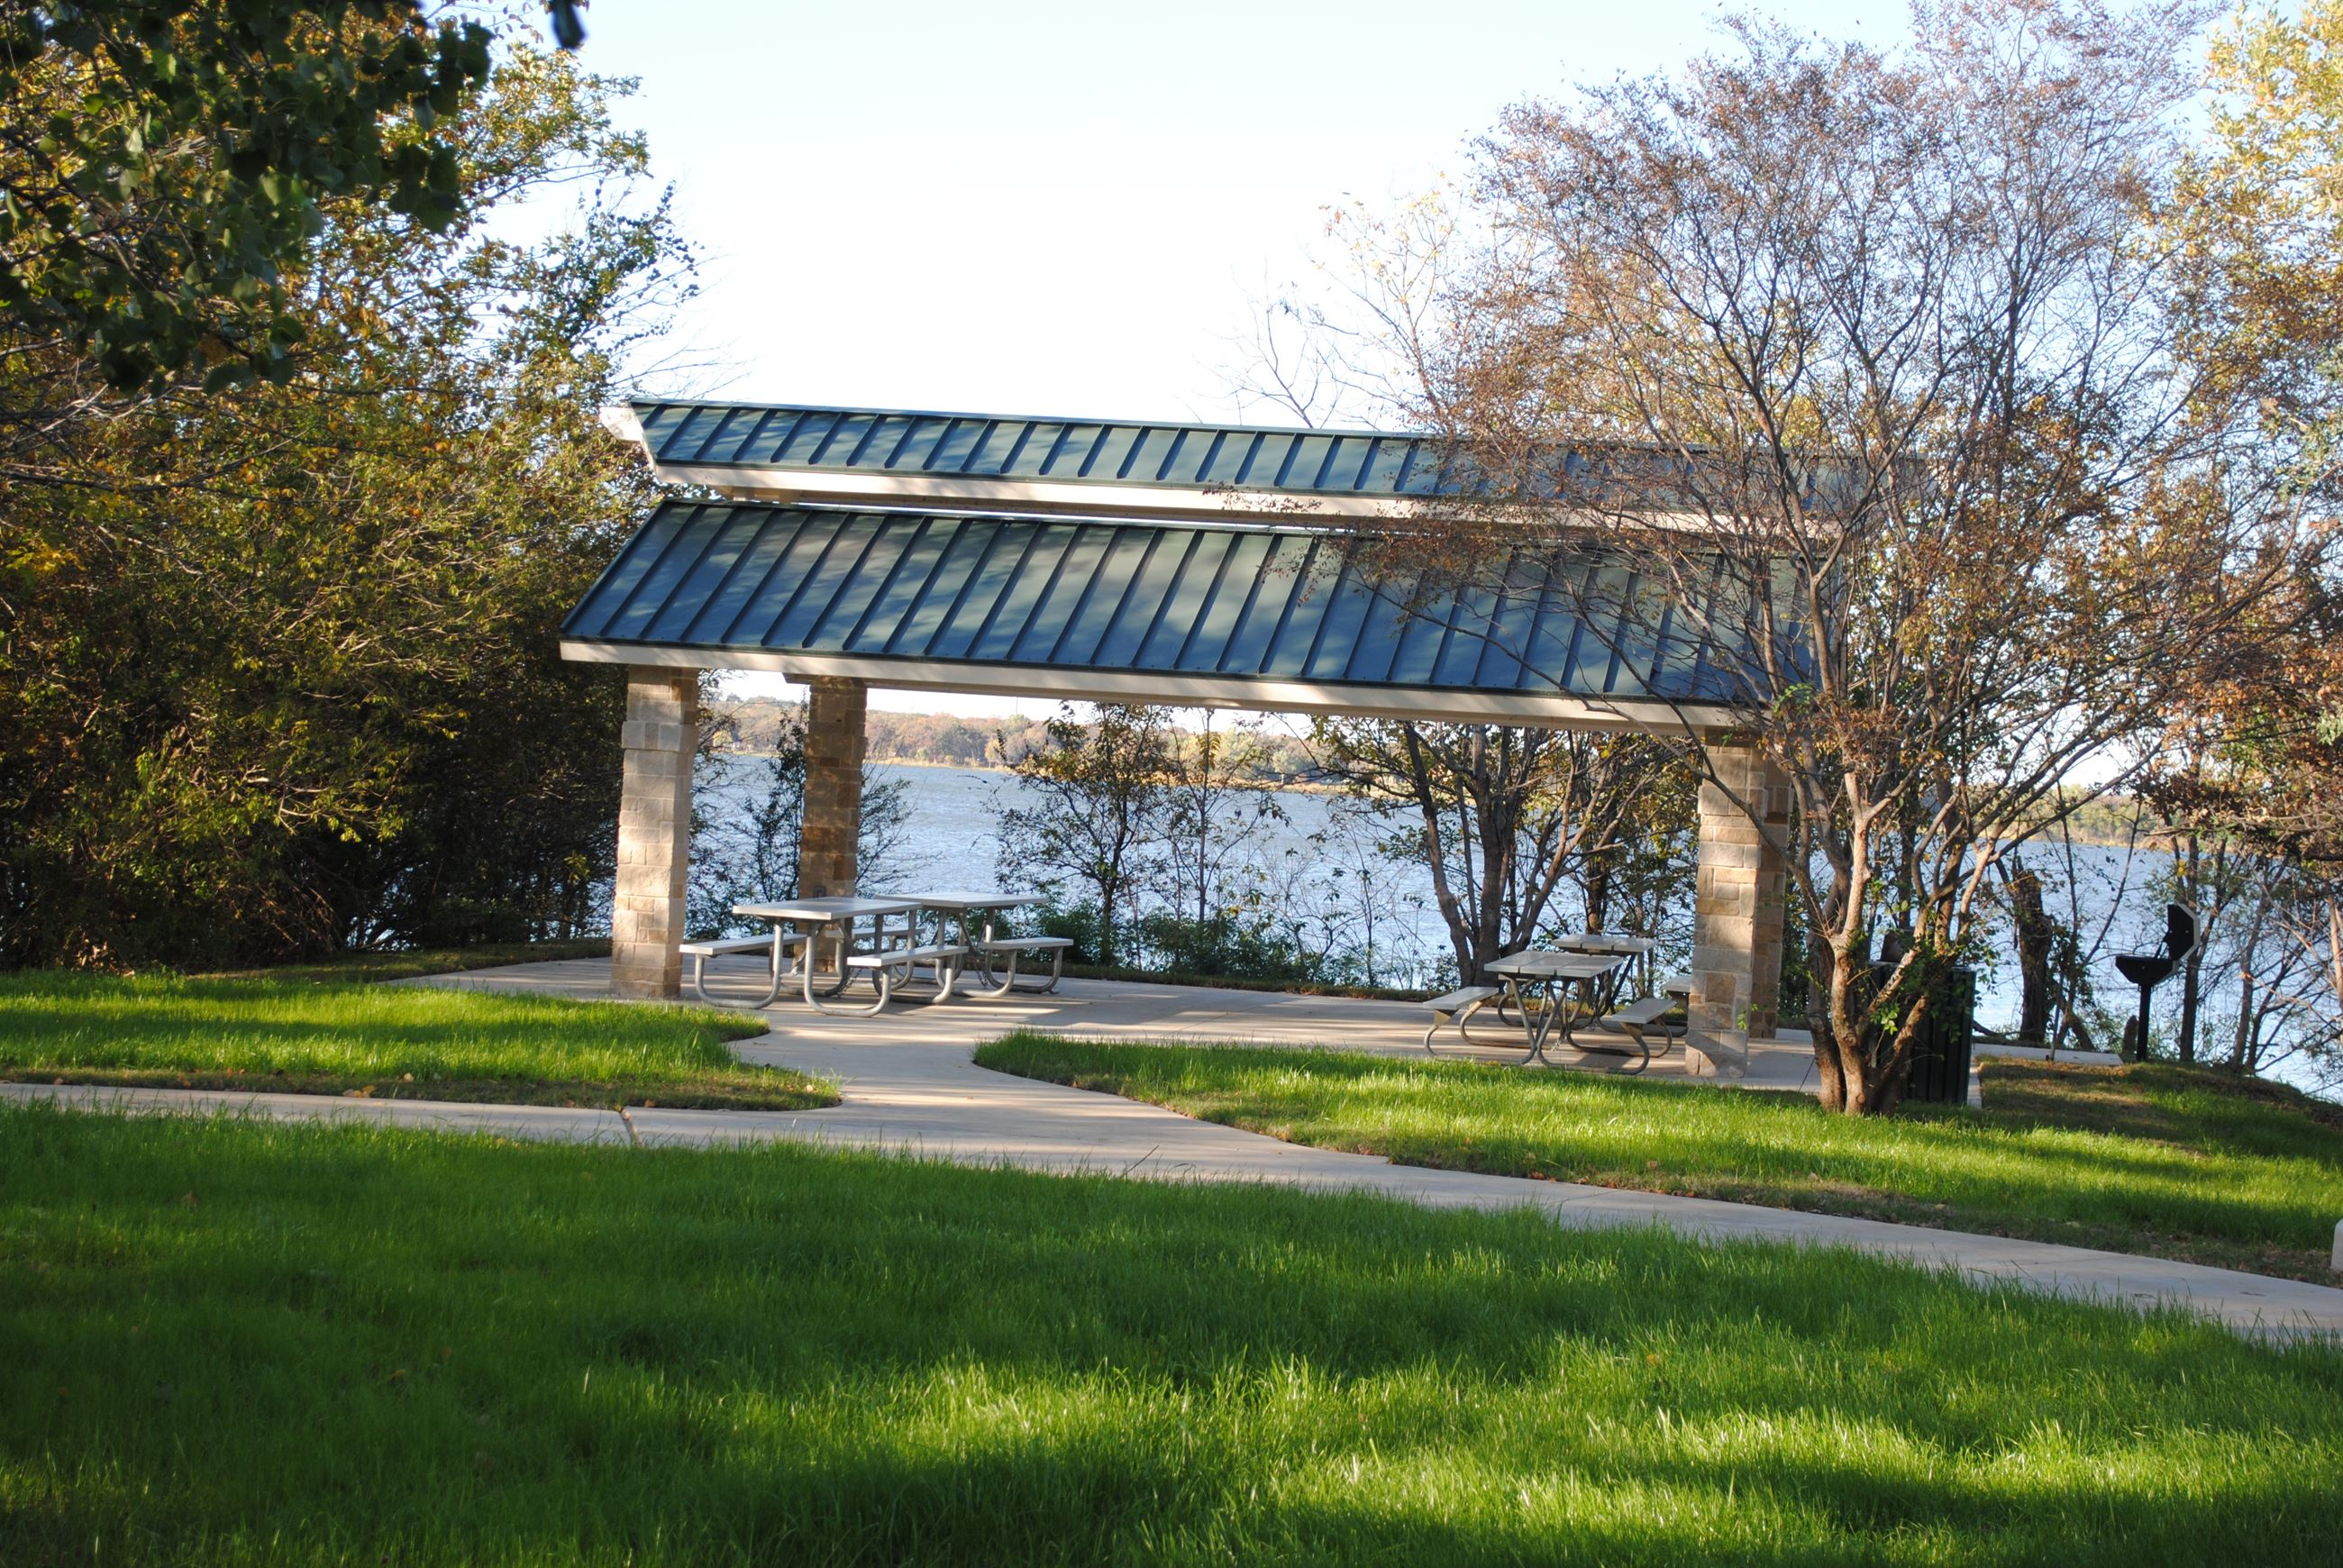 Lakeside Community Park Small Pavilion